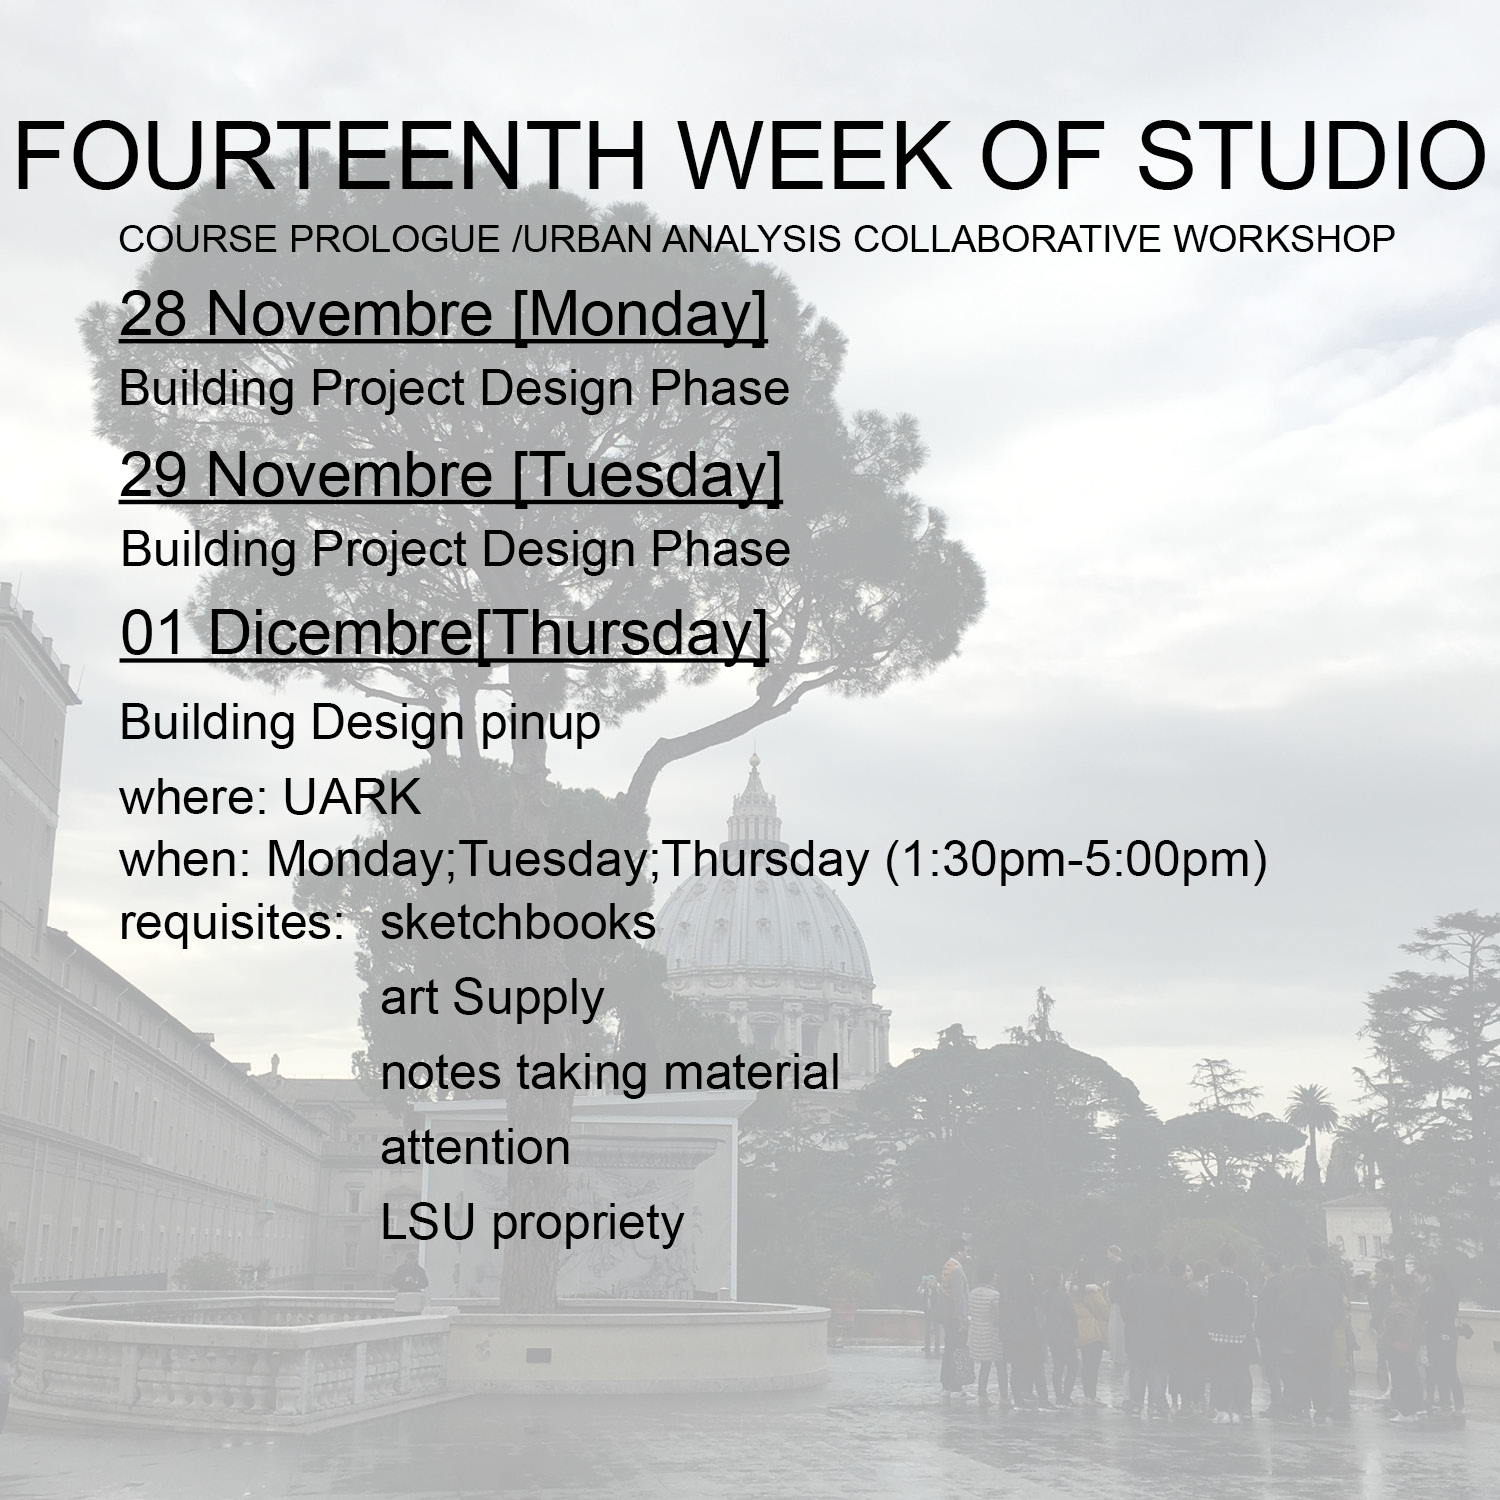 2016_Fourteenth week studio